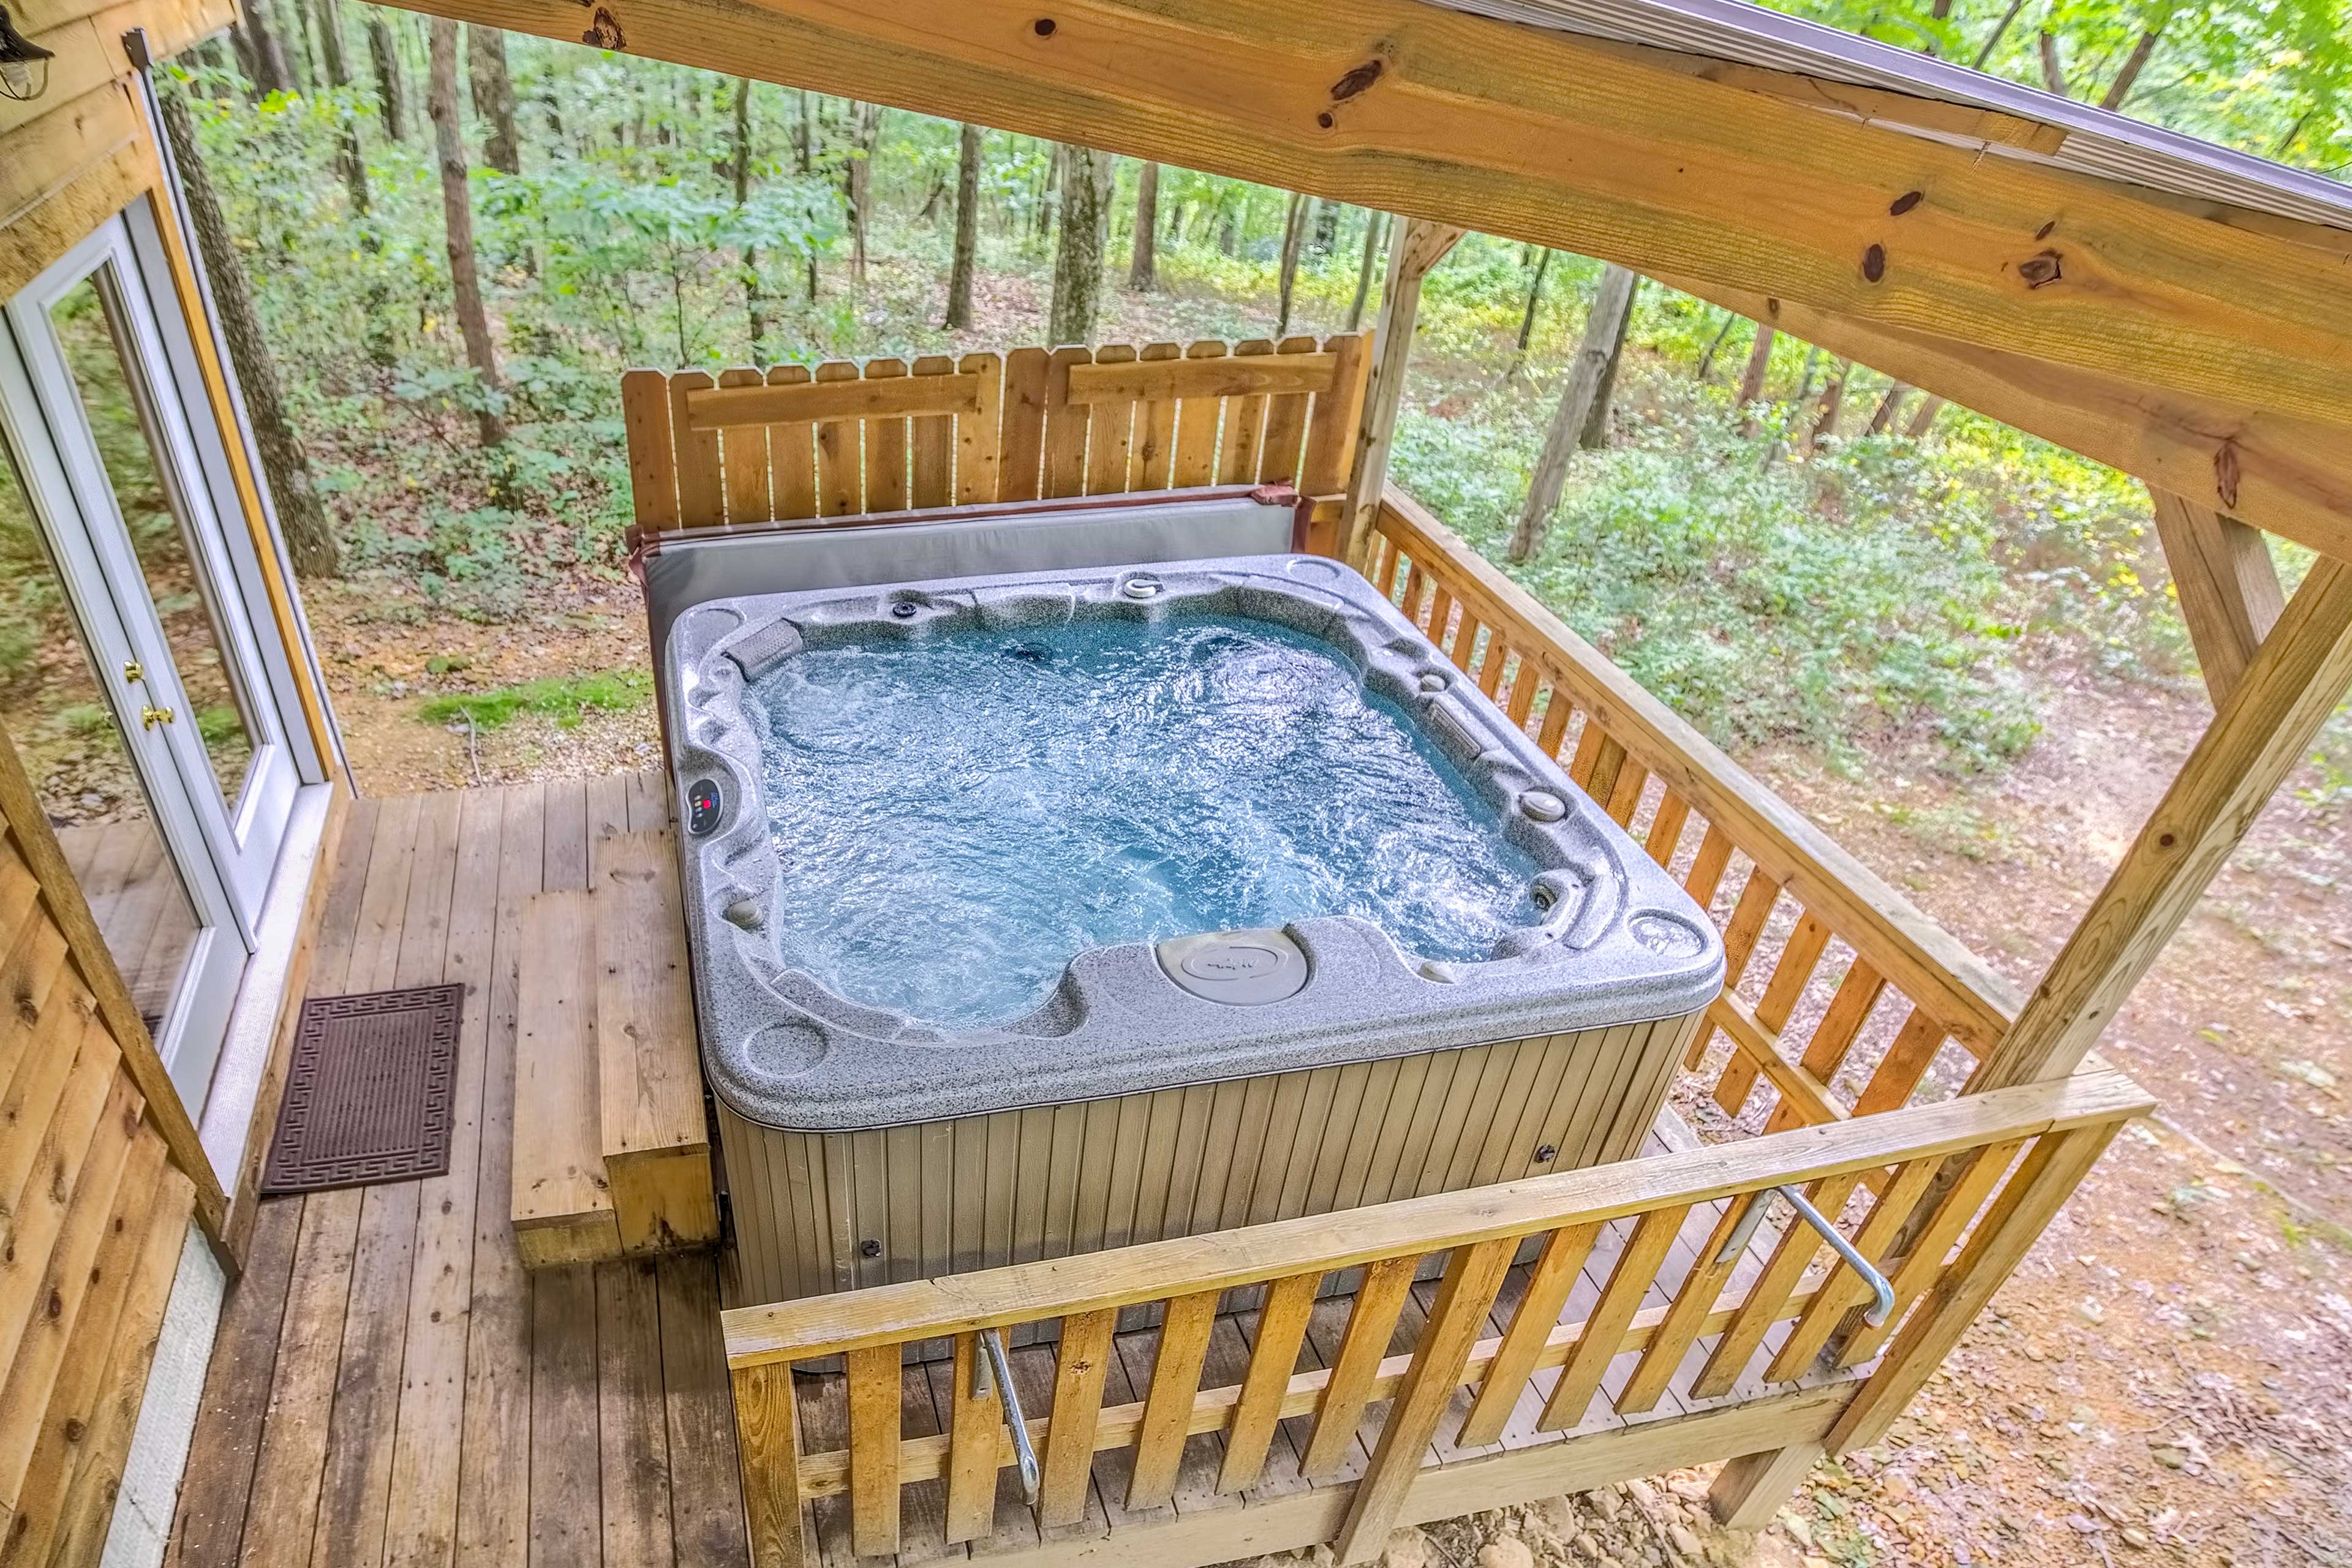 Sink into the hot tub and relax!